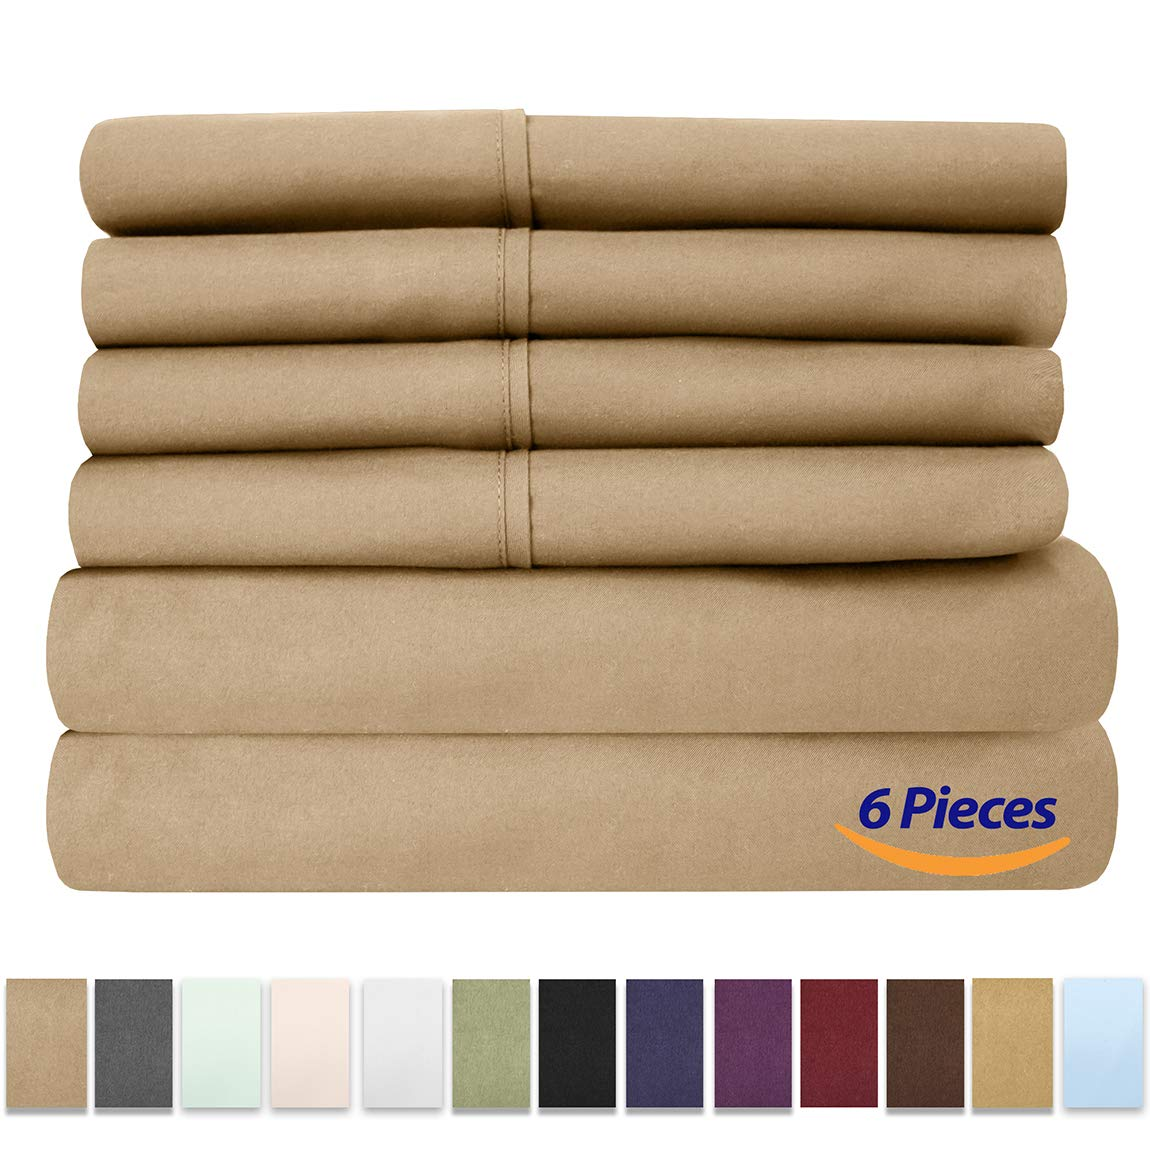 Sweet Home Collection 6 Piece 1500 Thread Count Brushed Microfiber Deep Pocket Sheet Set - 2 EXTRA PILLOW CASES, VALUE RV Short Queen Taupe